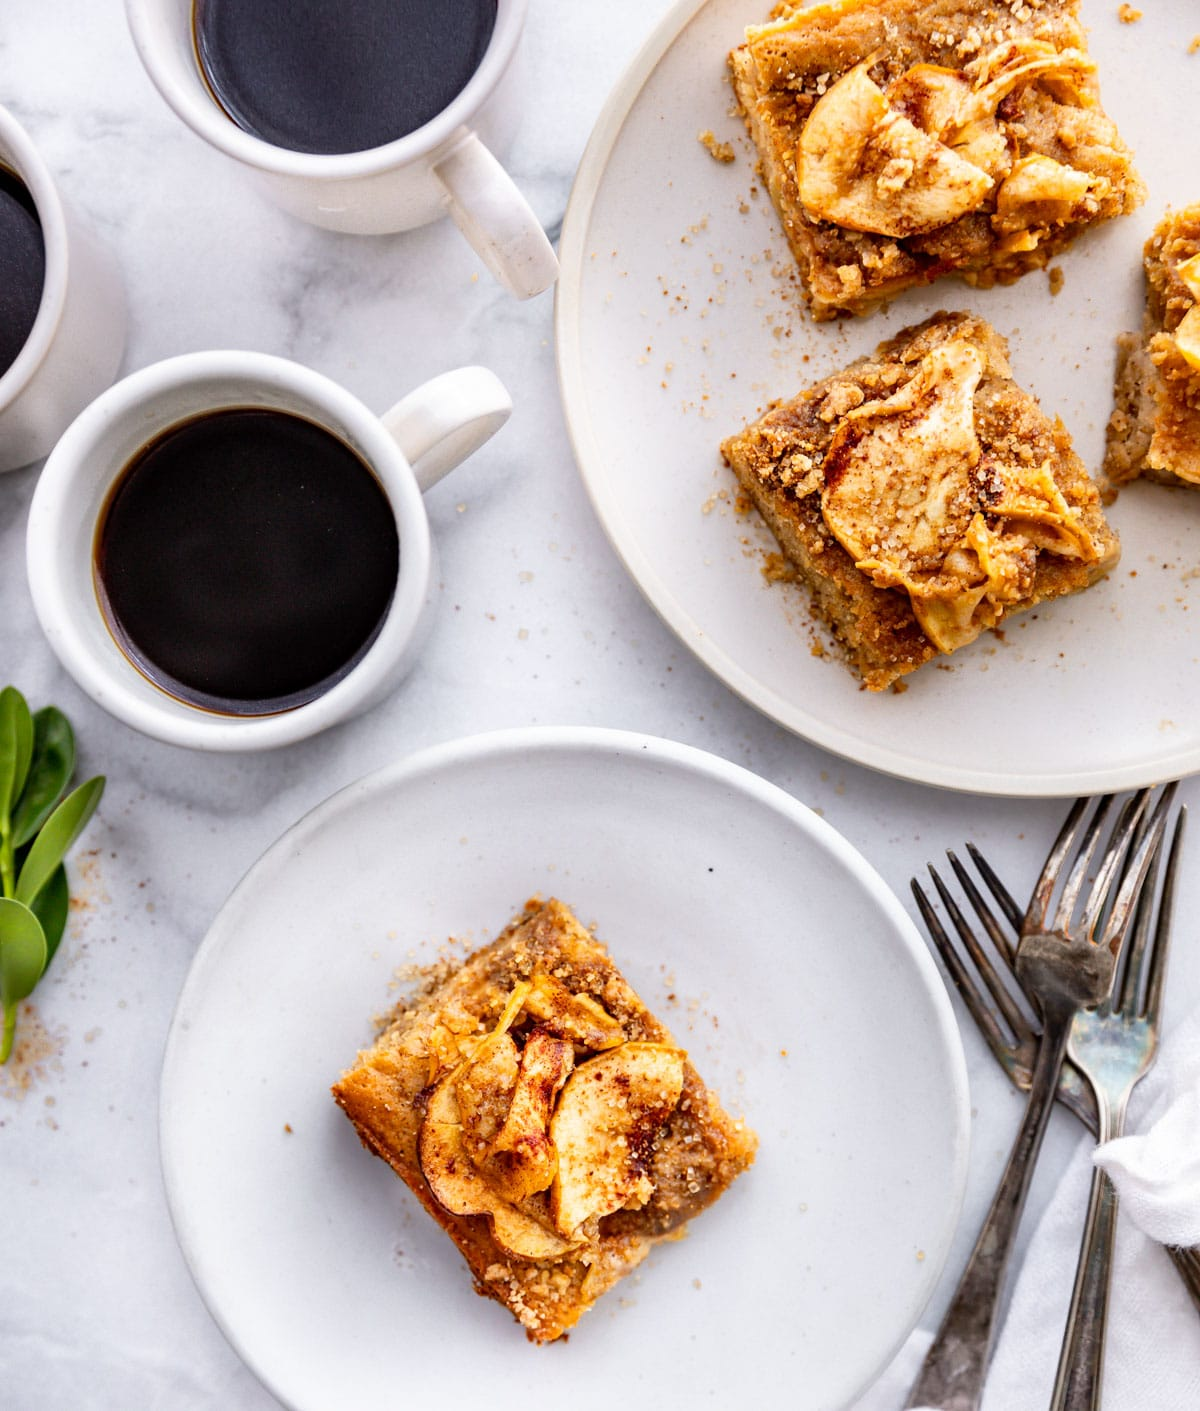 cake on plate with coffee